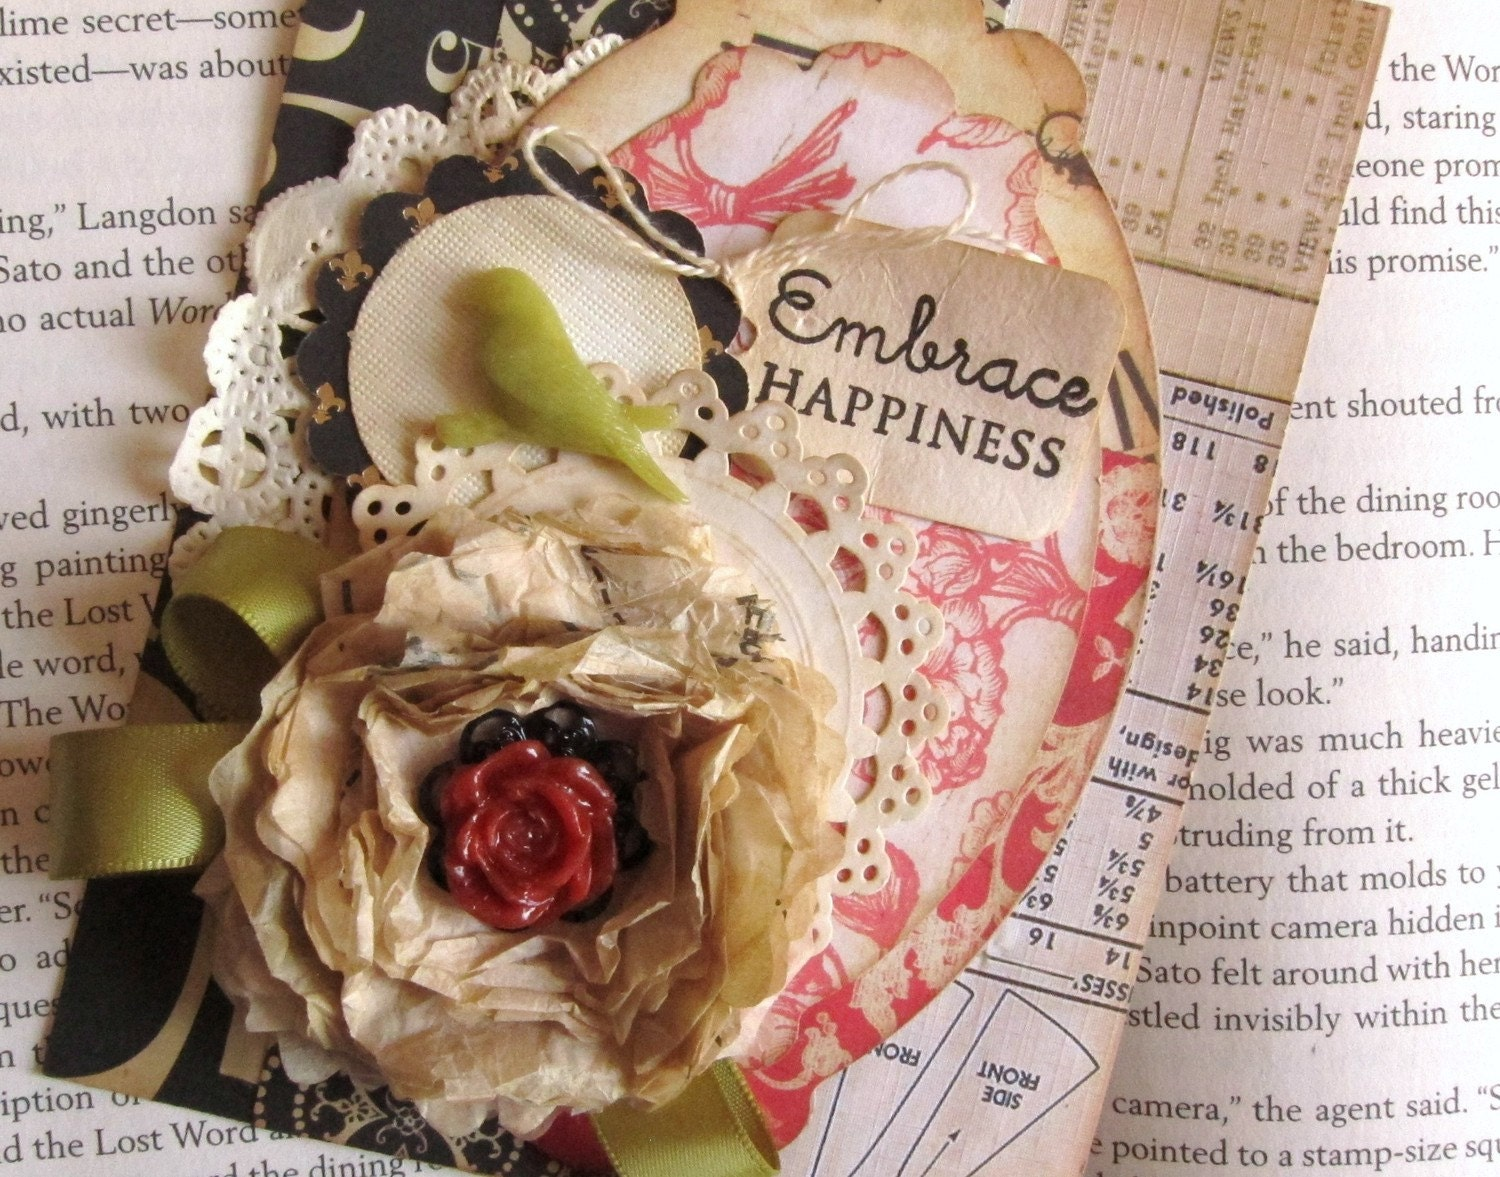 Shabby Chic Embrace Happiness handmade card